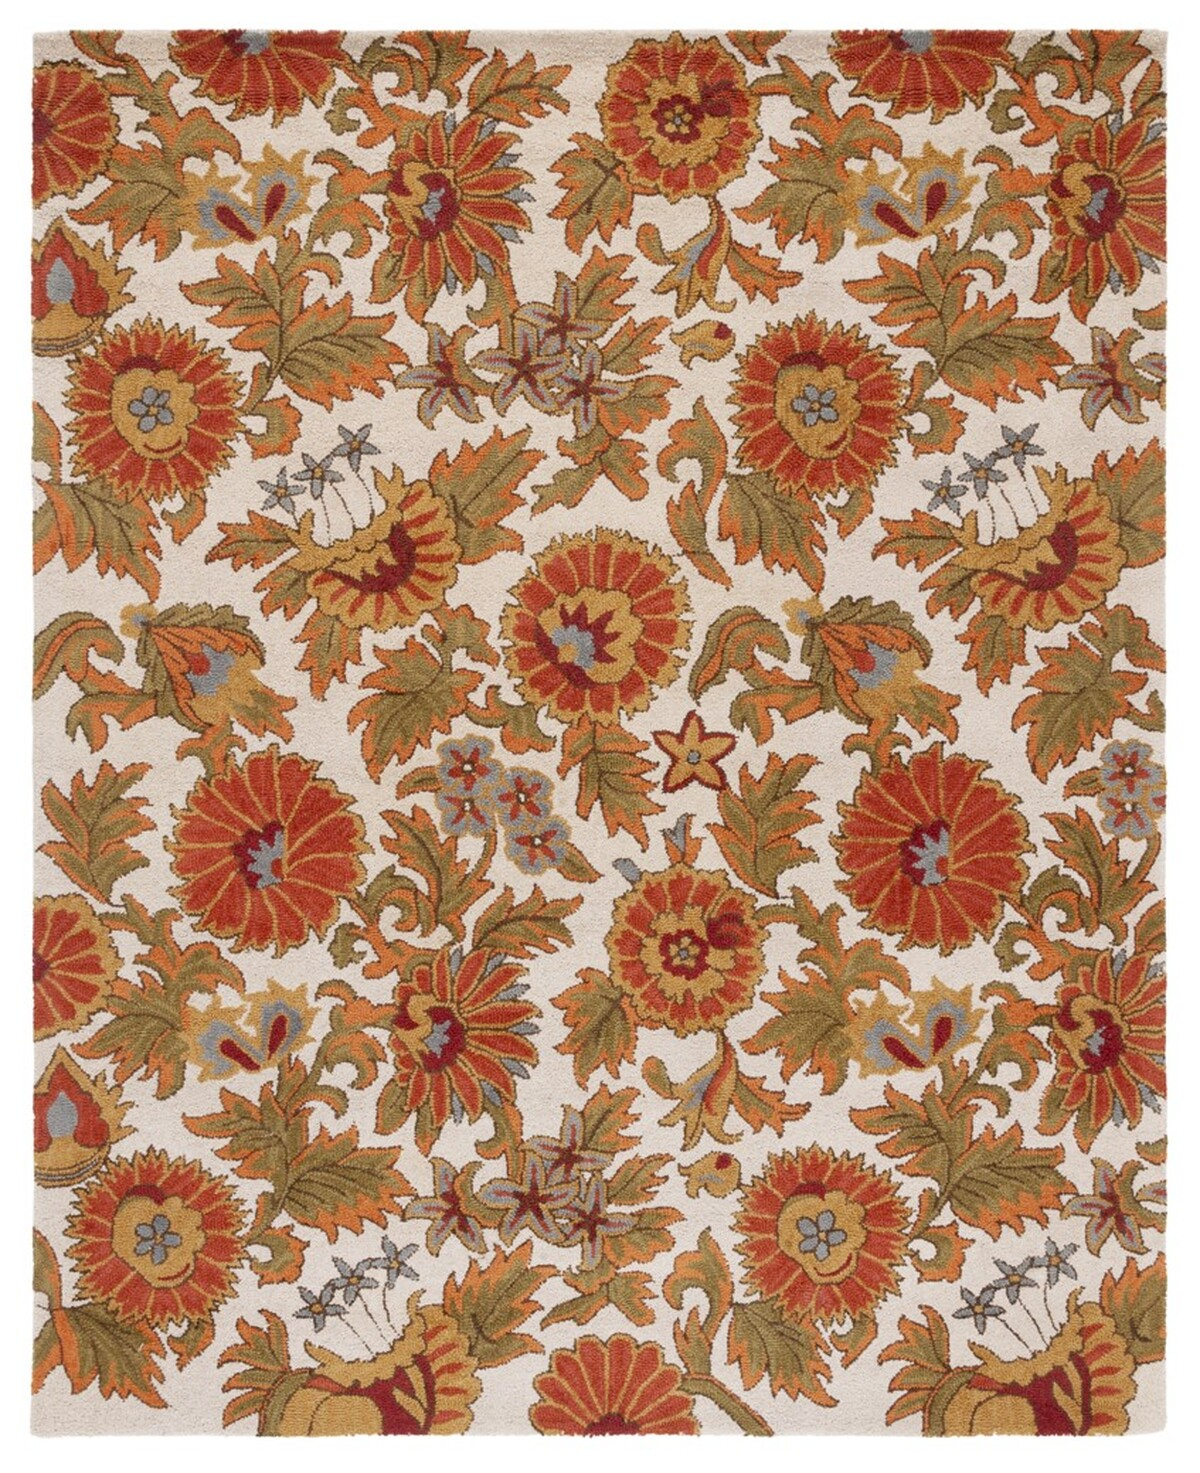 Rug Blm912c Blossom Area Rugs By Safavieh